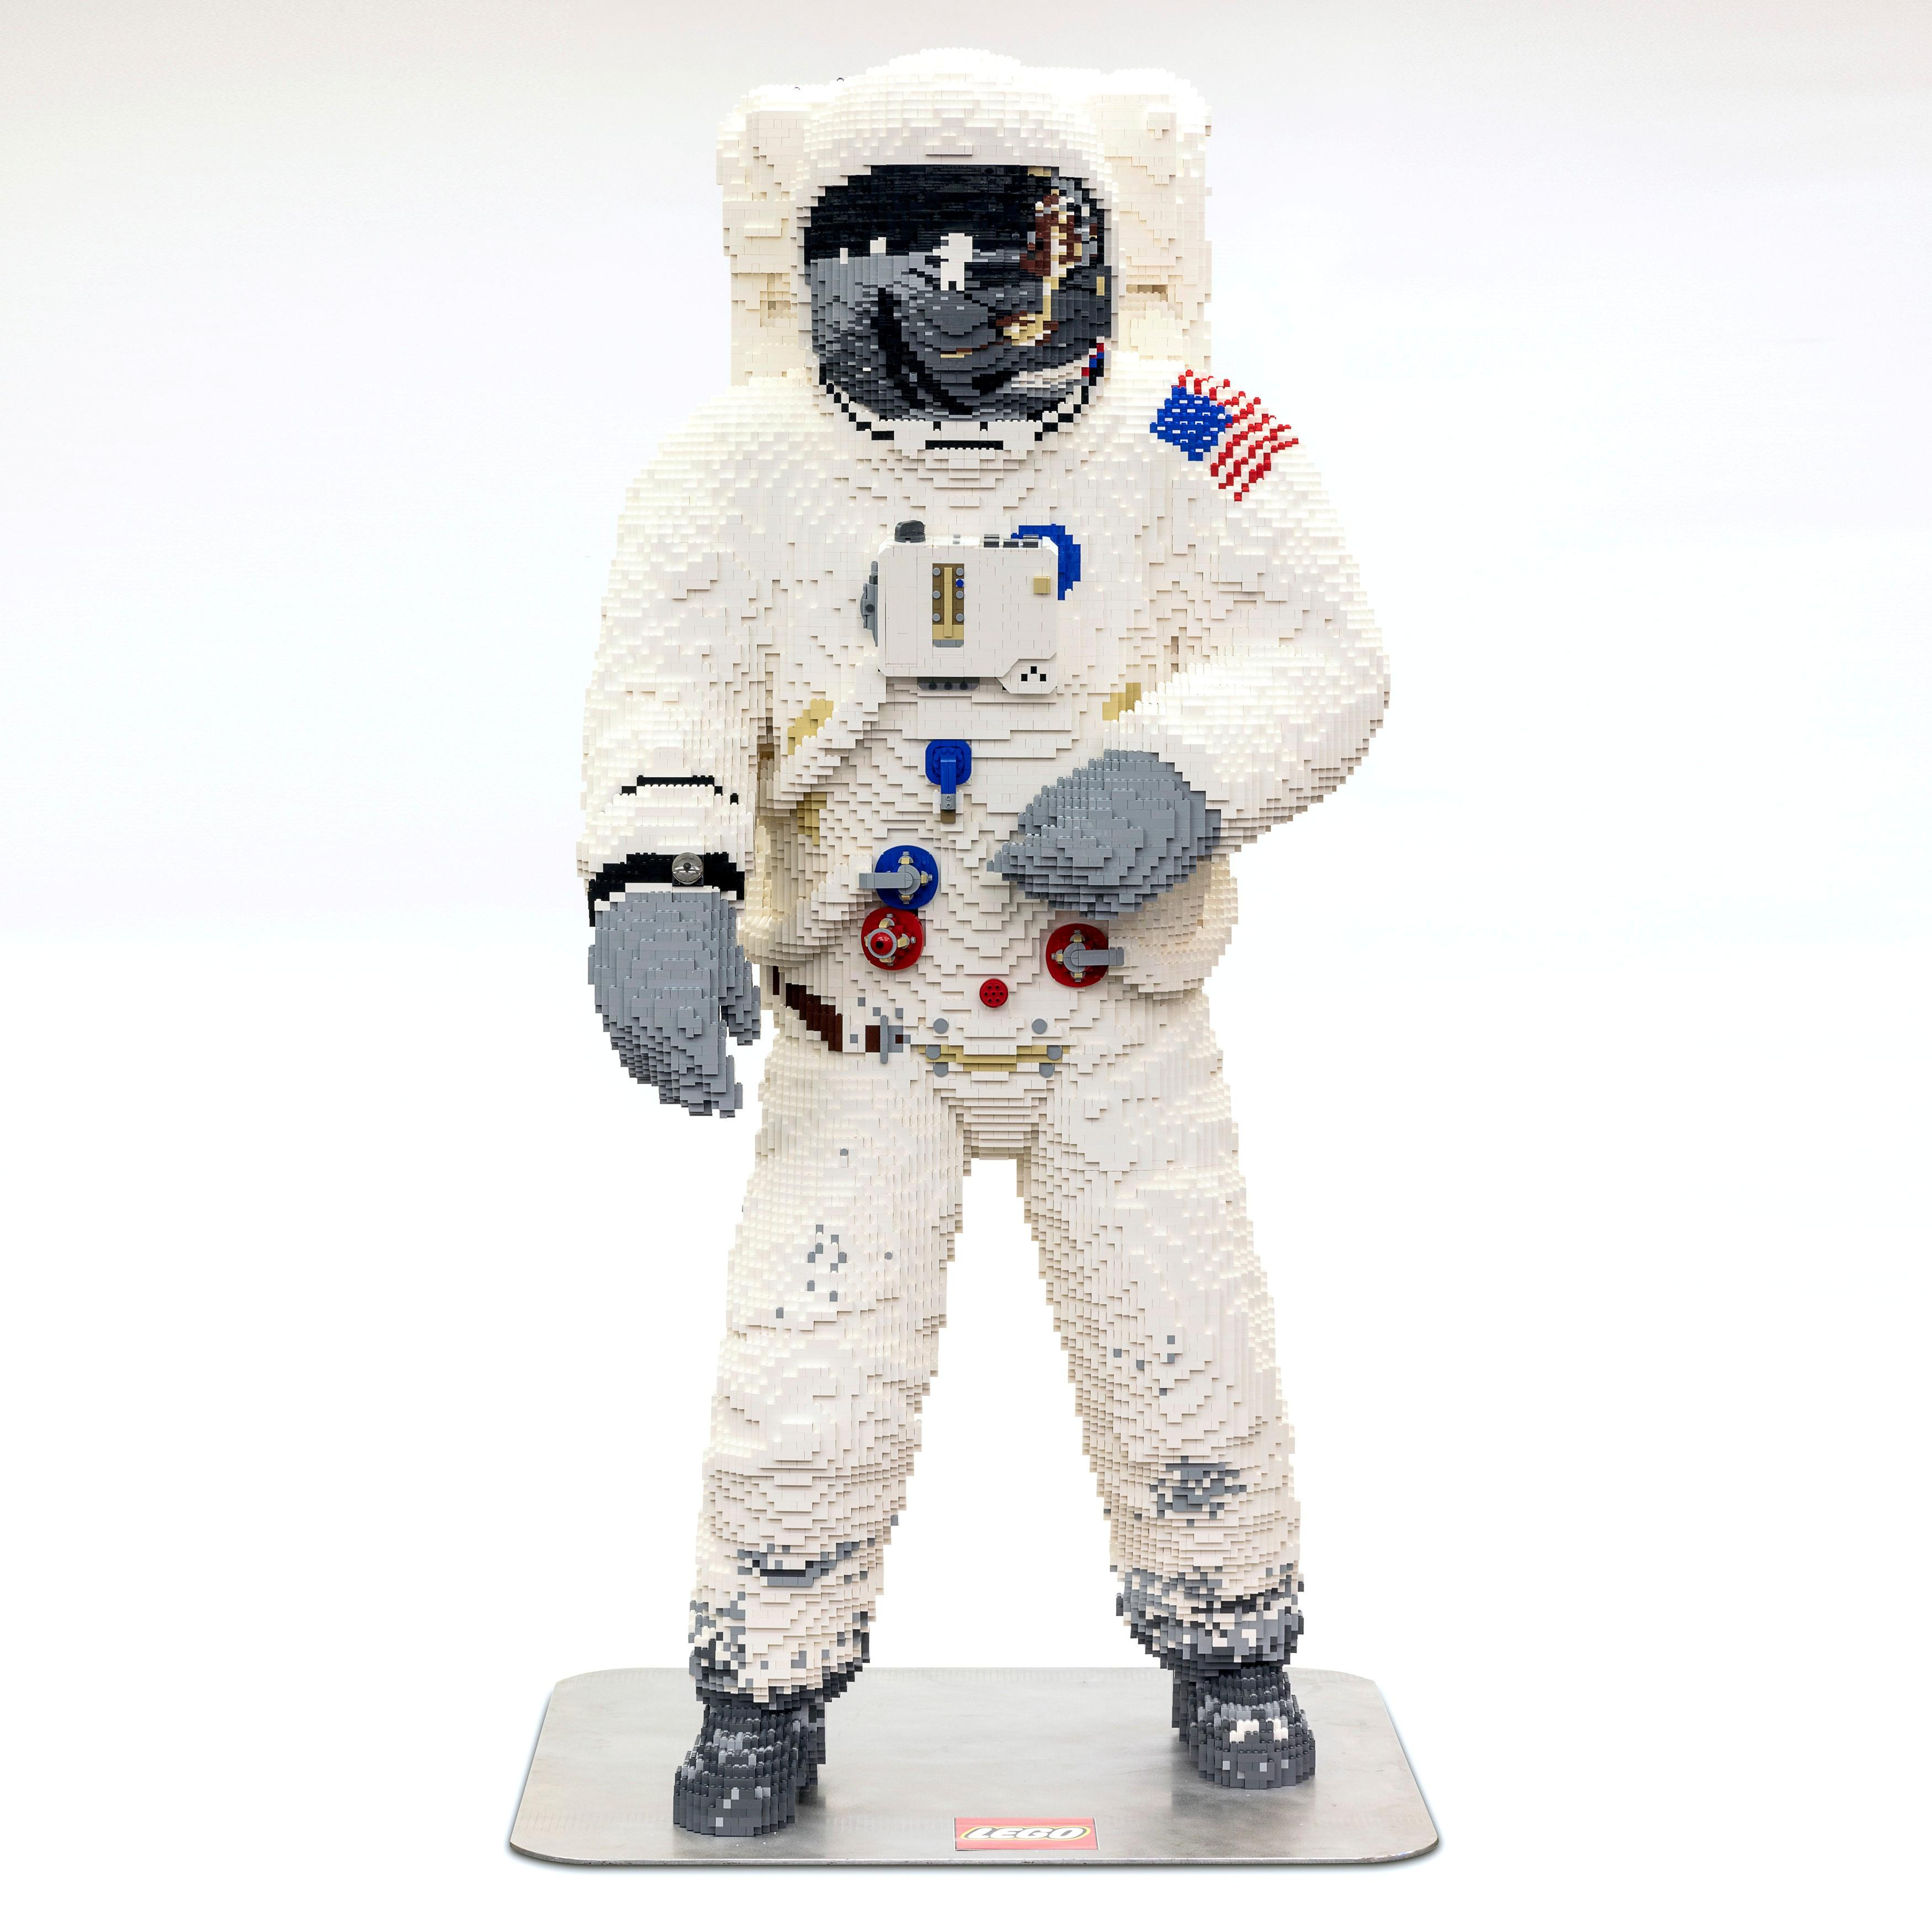 f978c0d60613a One giant leap': US marks Apollo mission 50 years on | SciTech | GMA ...